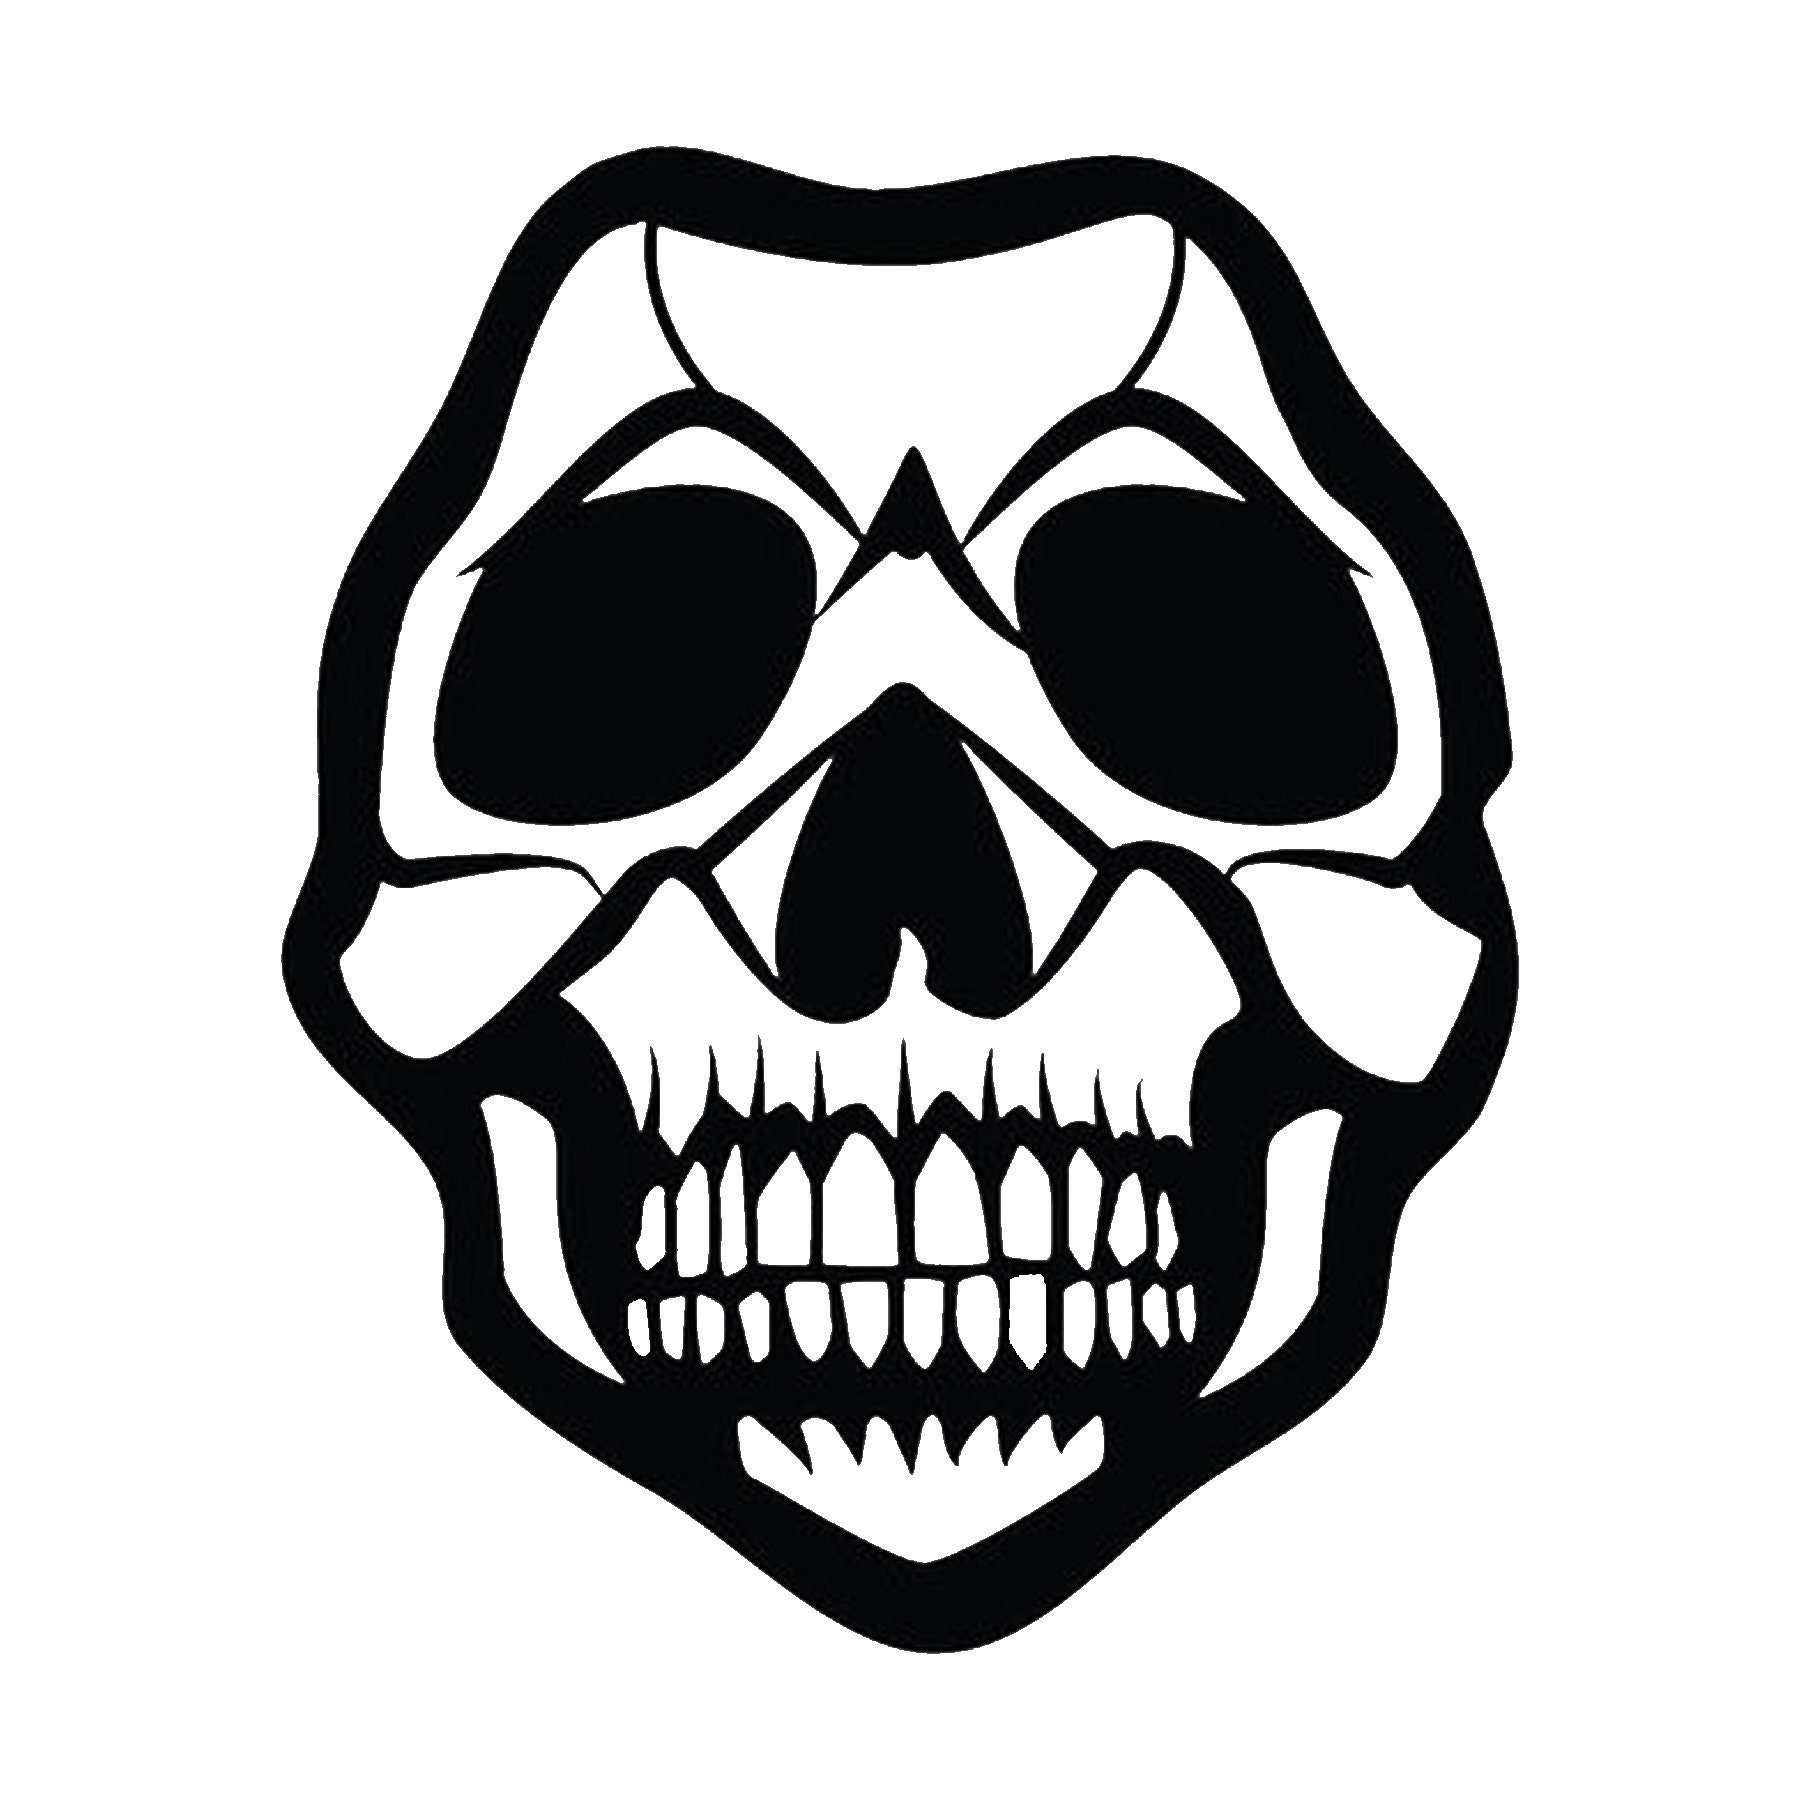 CAD$8.69 - Skull Vinyl Decal - various sizes and colors - colours